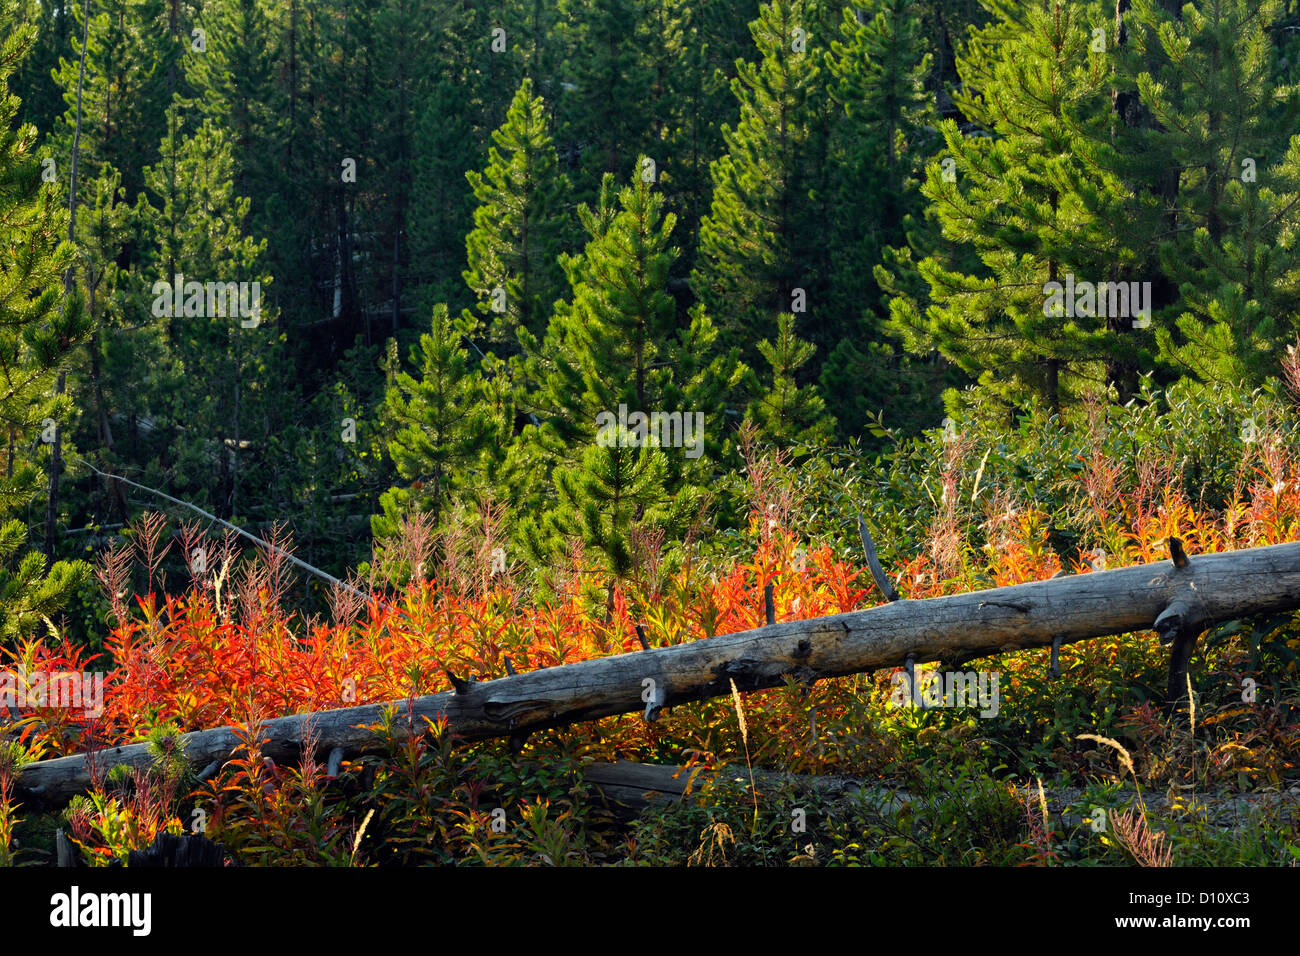 Dead snags, late-summer fireweed and regenerating pines on the Blacktail Deer Plateau, Yellowstone NP, Wyoming, - Stock Image